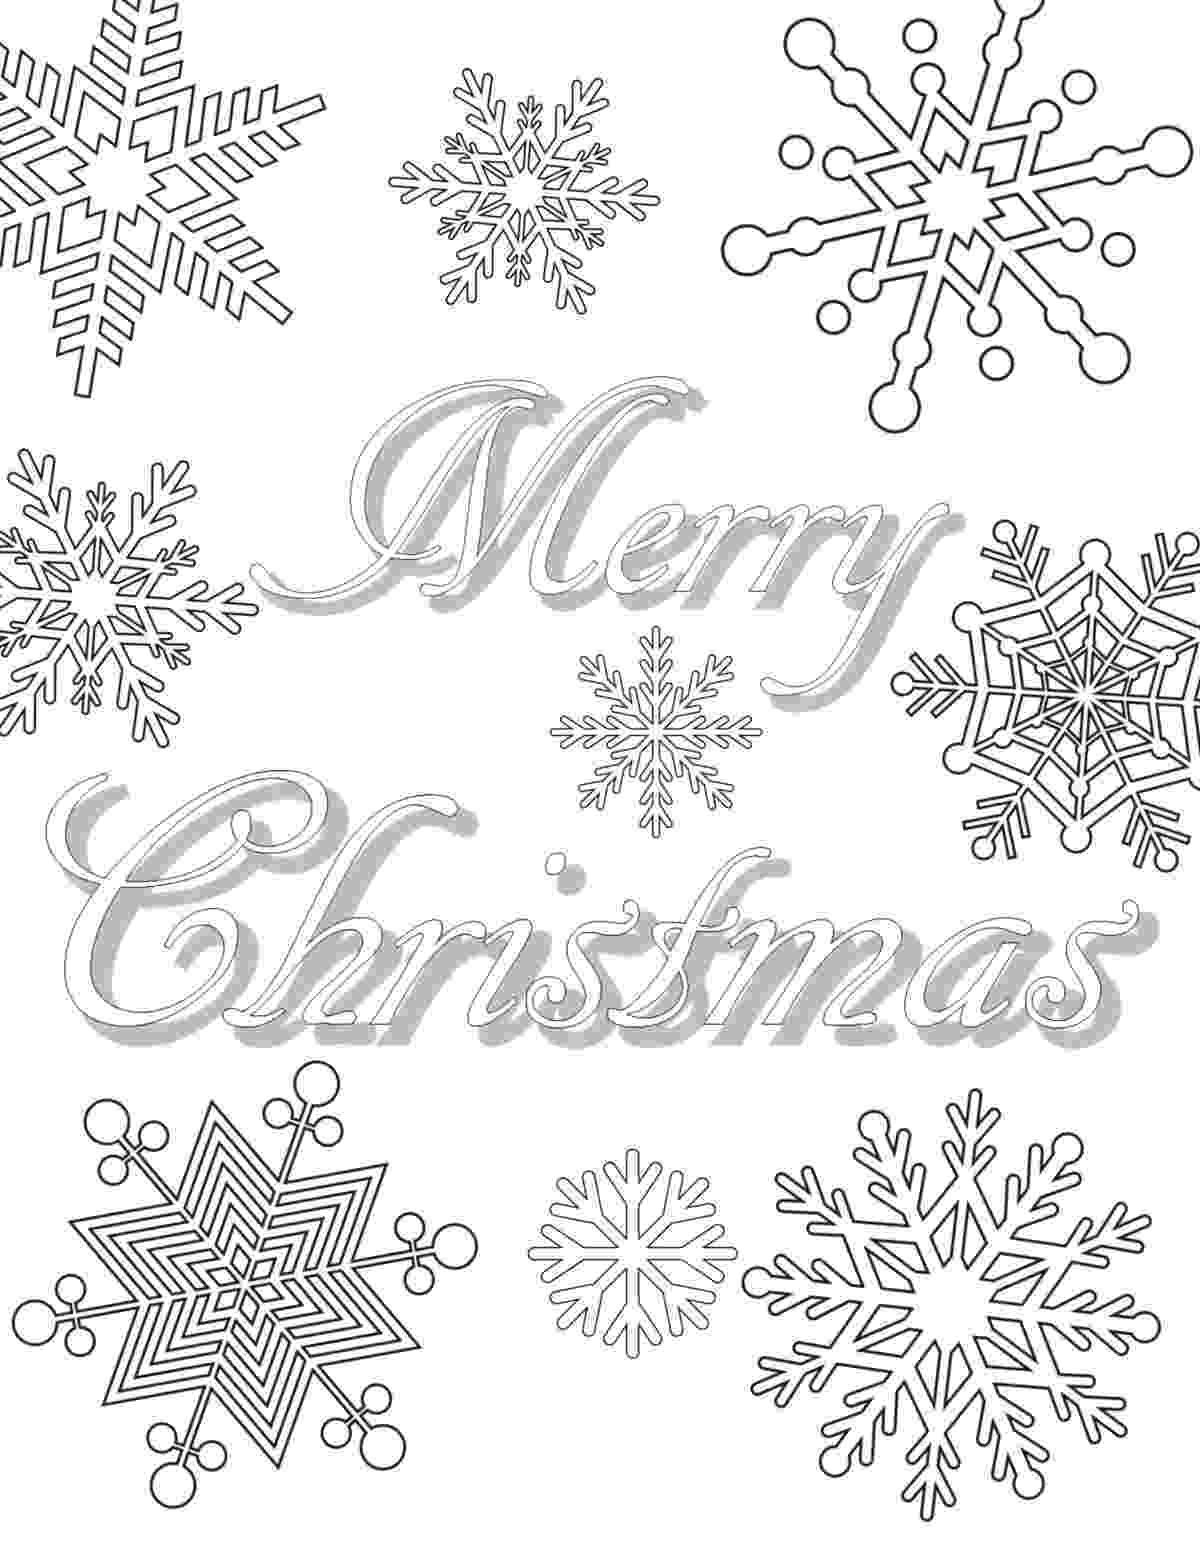 coloring pages for christmas free printable printable christmas coloring pages for kids wallpapers9 christmas free coloring printable pages for